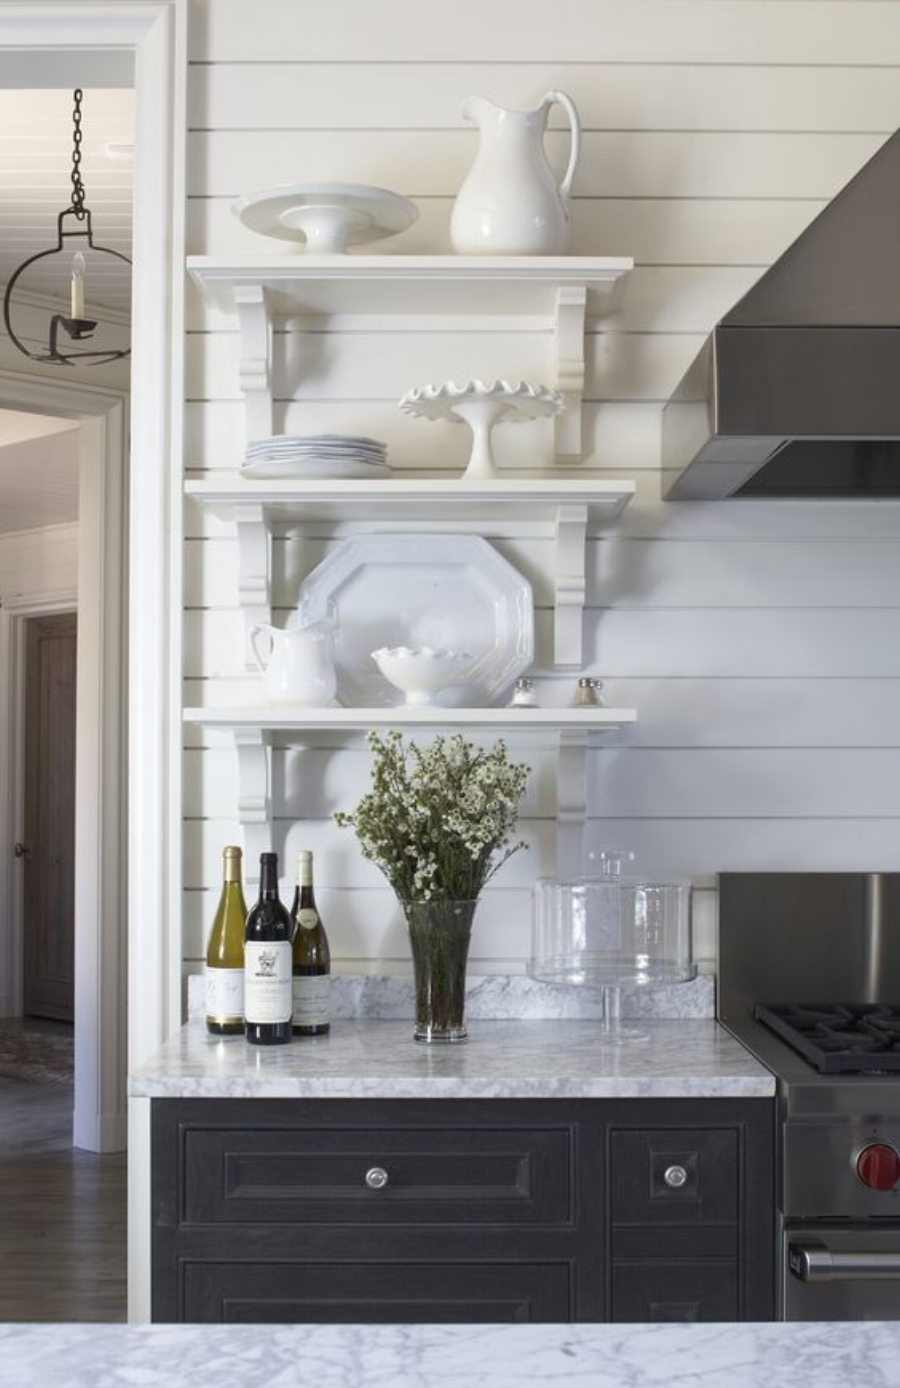 shiplap is a great alternative for kitchen backsplash and brings charm to a kitchen  it u0027s a wooden board that u0027s often used in barns and outside buildings     11 backsplash alternatives to subway tile   blue door living  rh   bluedoorlivingblog com